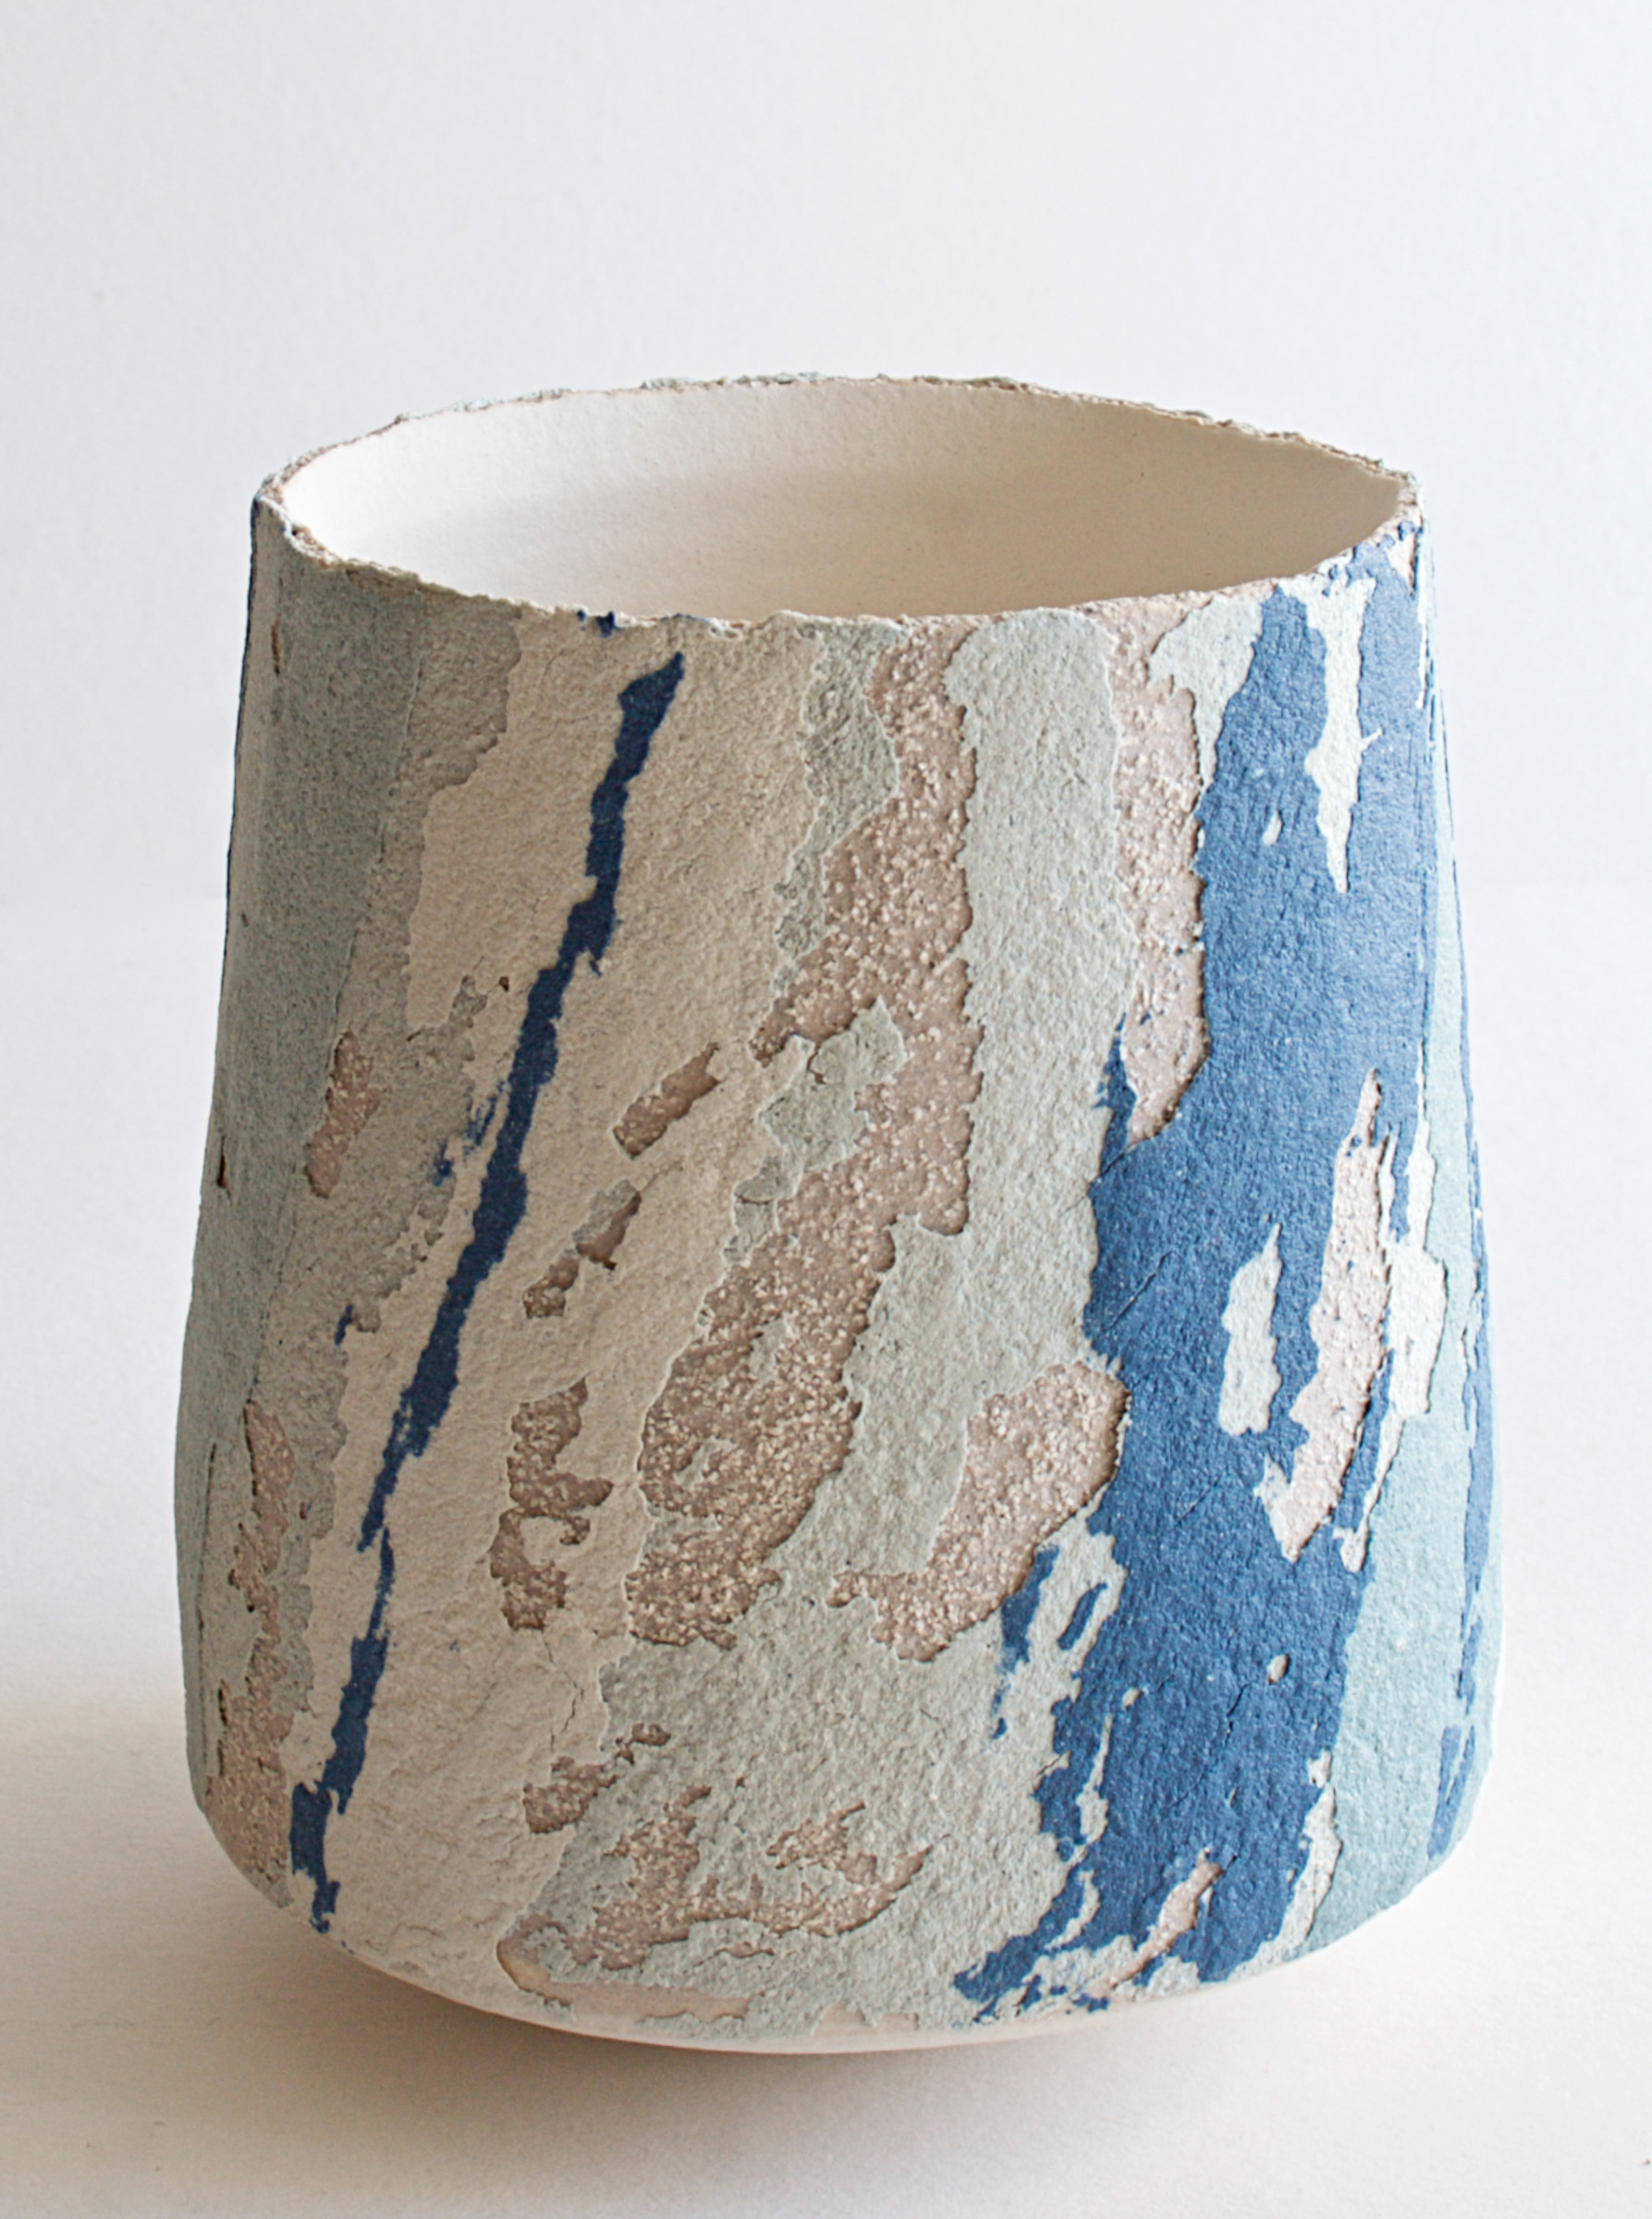 """<span class=""""link fancybox-details-link""""><a href=""""/artists/79-clare-conrad/works/6931-clare-conrad-tapering-cylinder-2020/"""">View Detail Page</a></span><div class=""""artist""""><strong>Clare Conrad</strong></div> <div class=""""title""""><em>Tapering cylinder</em>, 2020</div> <div class=""""medium"""">Stoneware</div> <div class=""""dimensions"""">h. 10.5 cm</div><div class=""""copyright_line"""">Copyright The Artist</div>"""